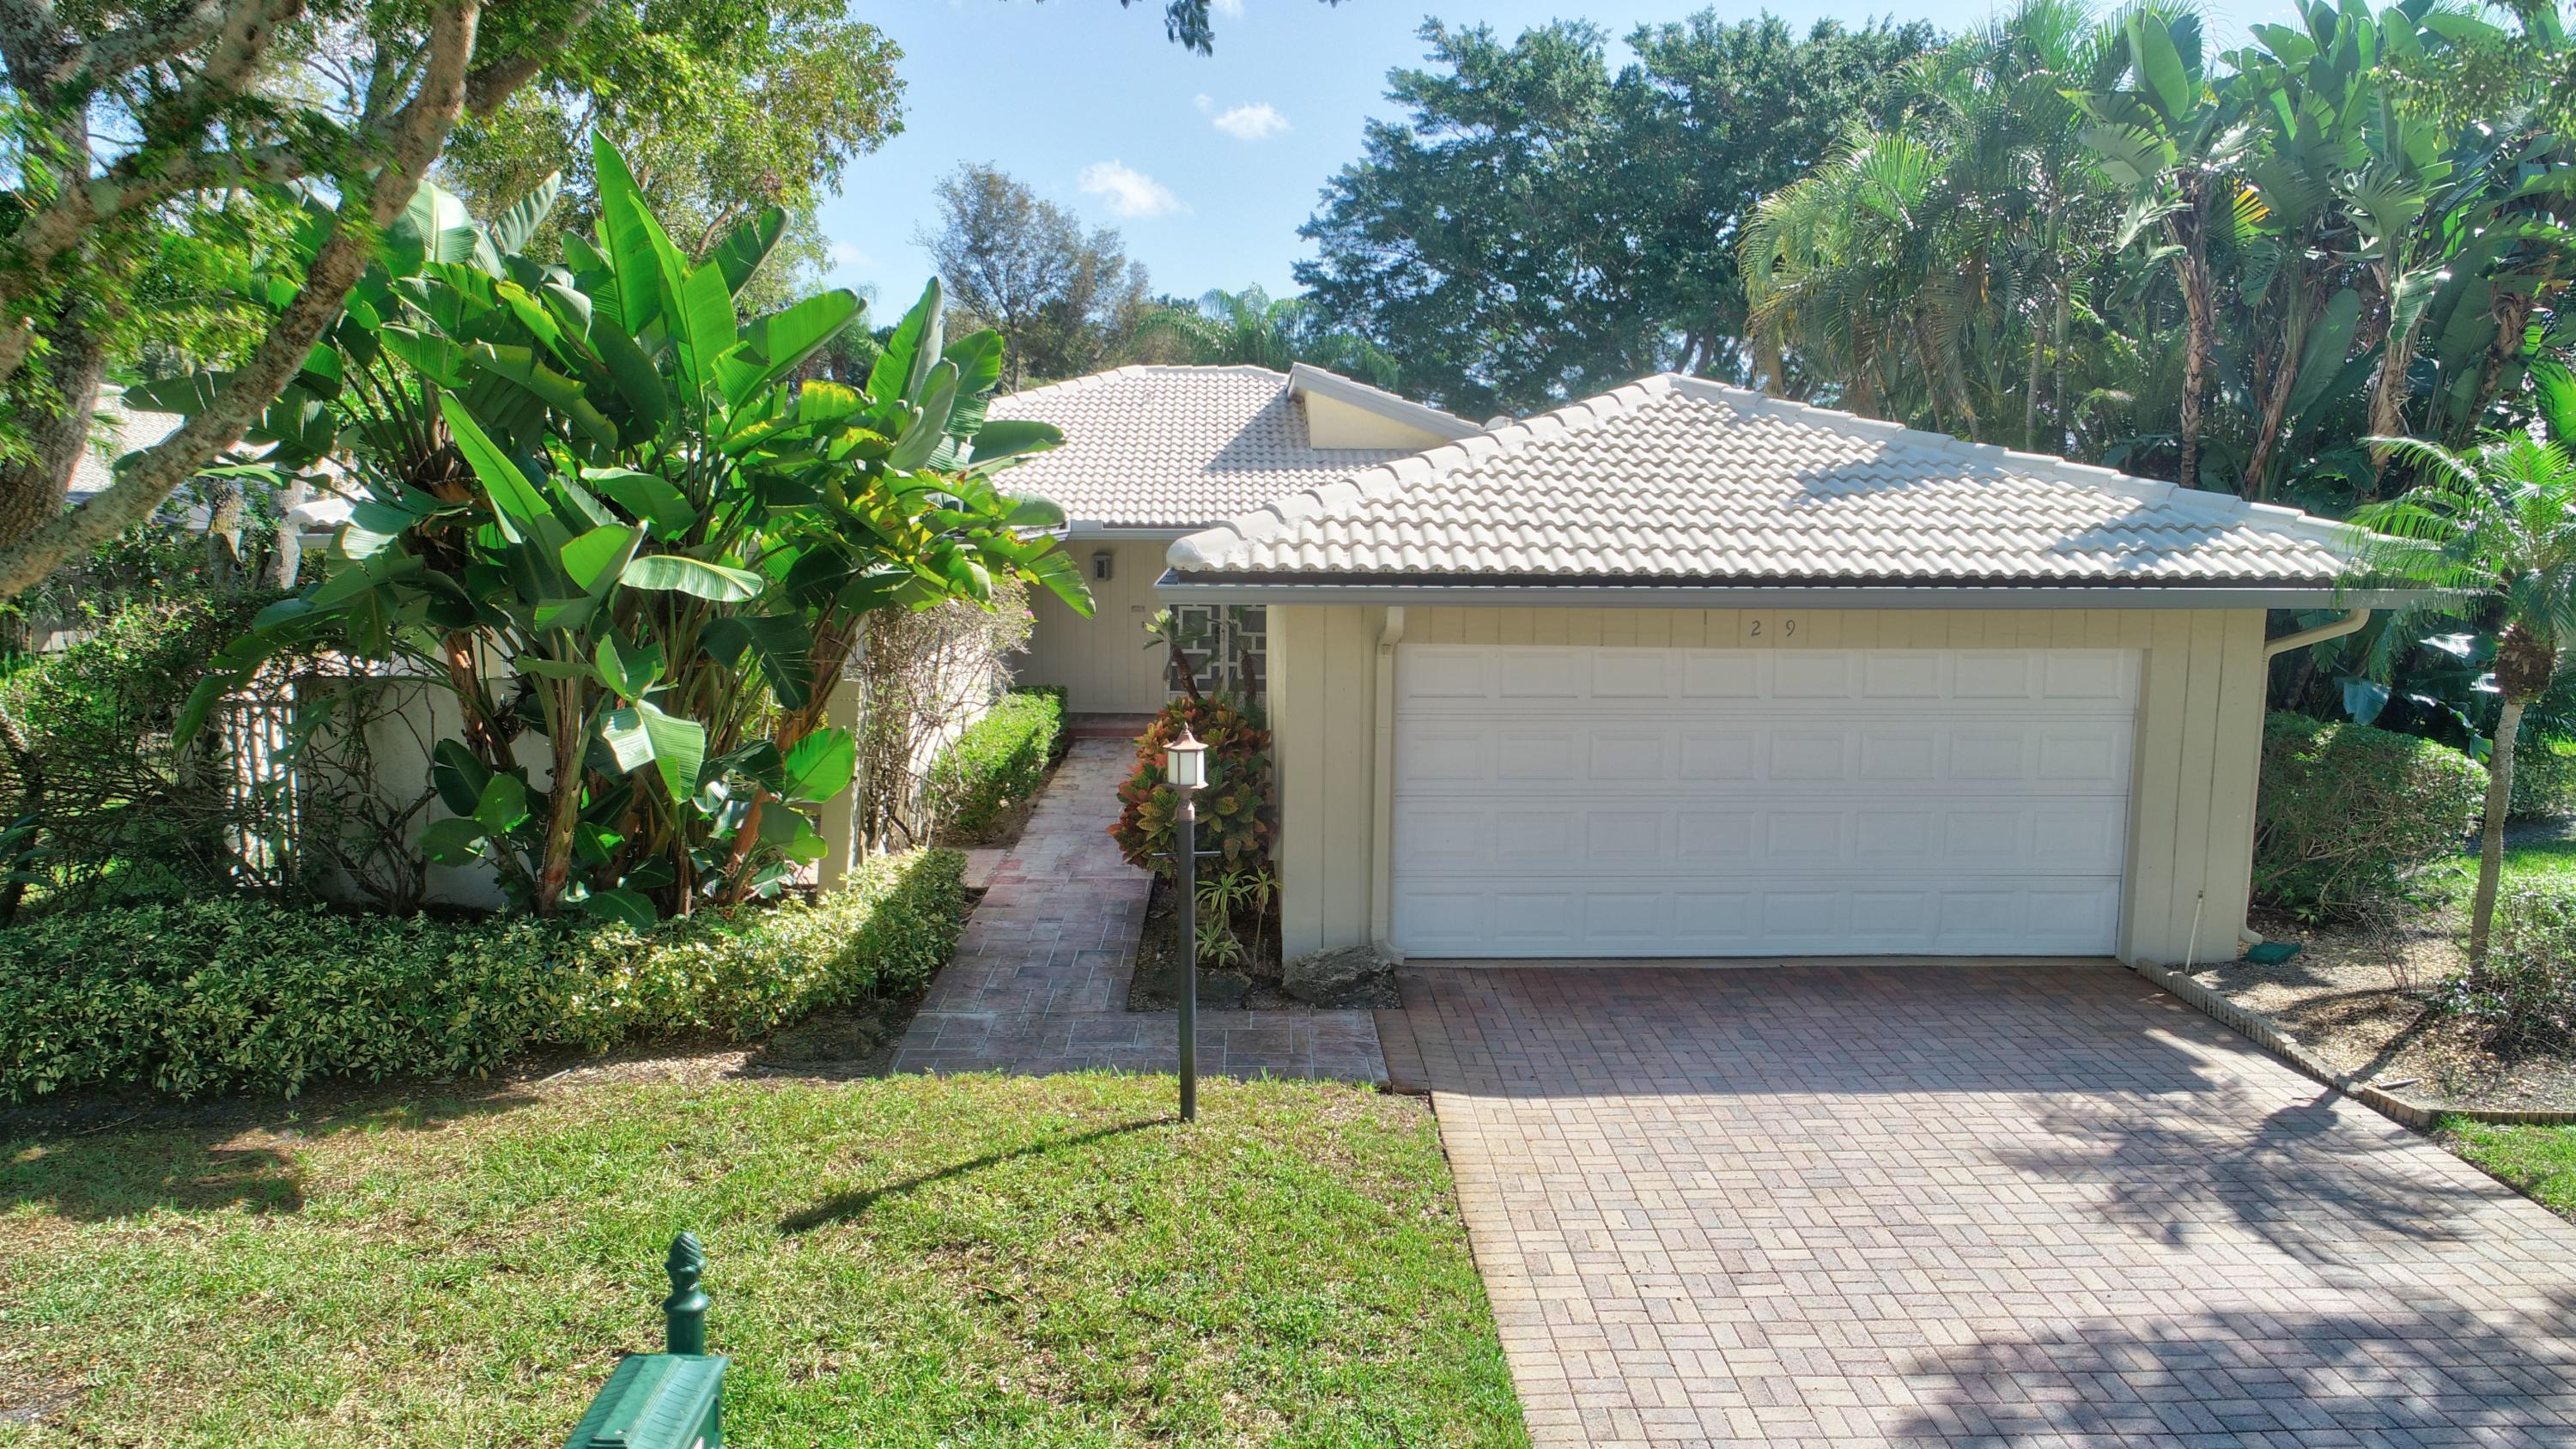 Details for 29 Glens Drive, Boynton Beach, FL 33436